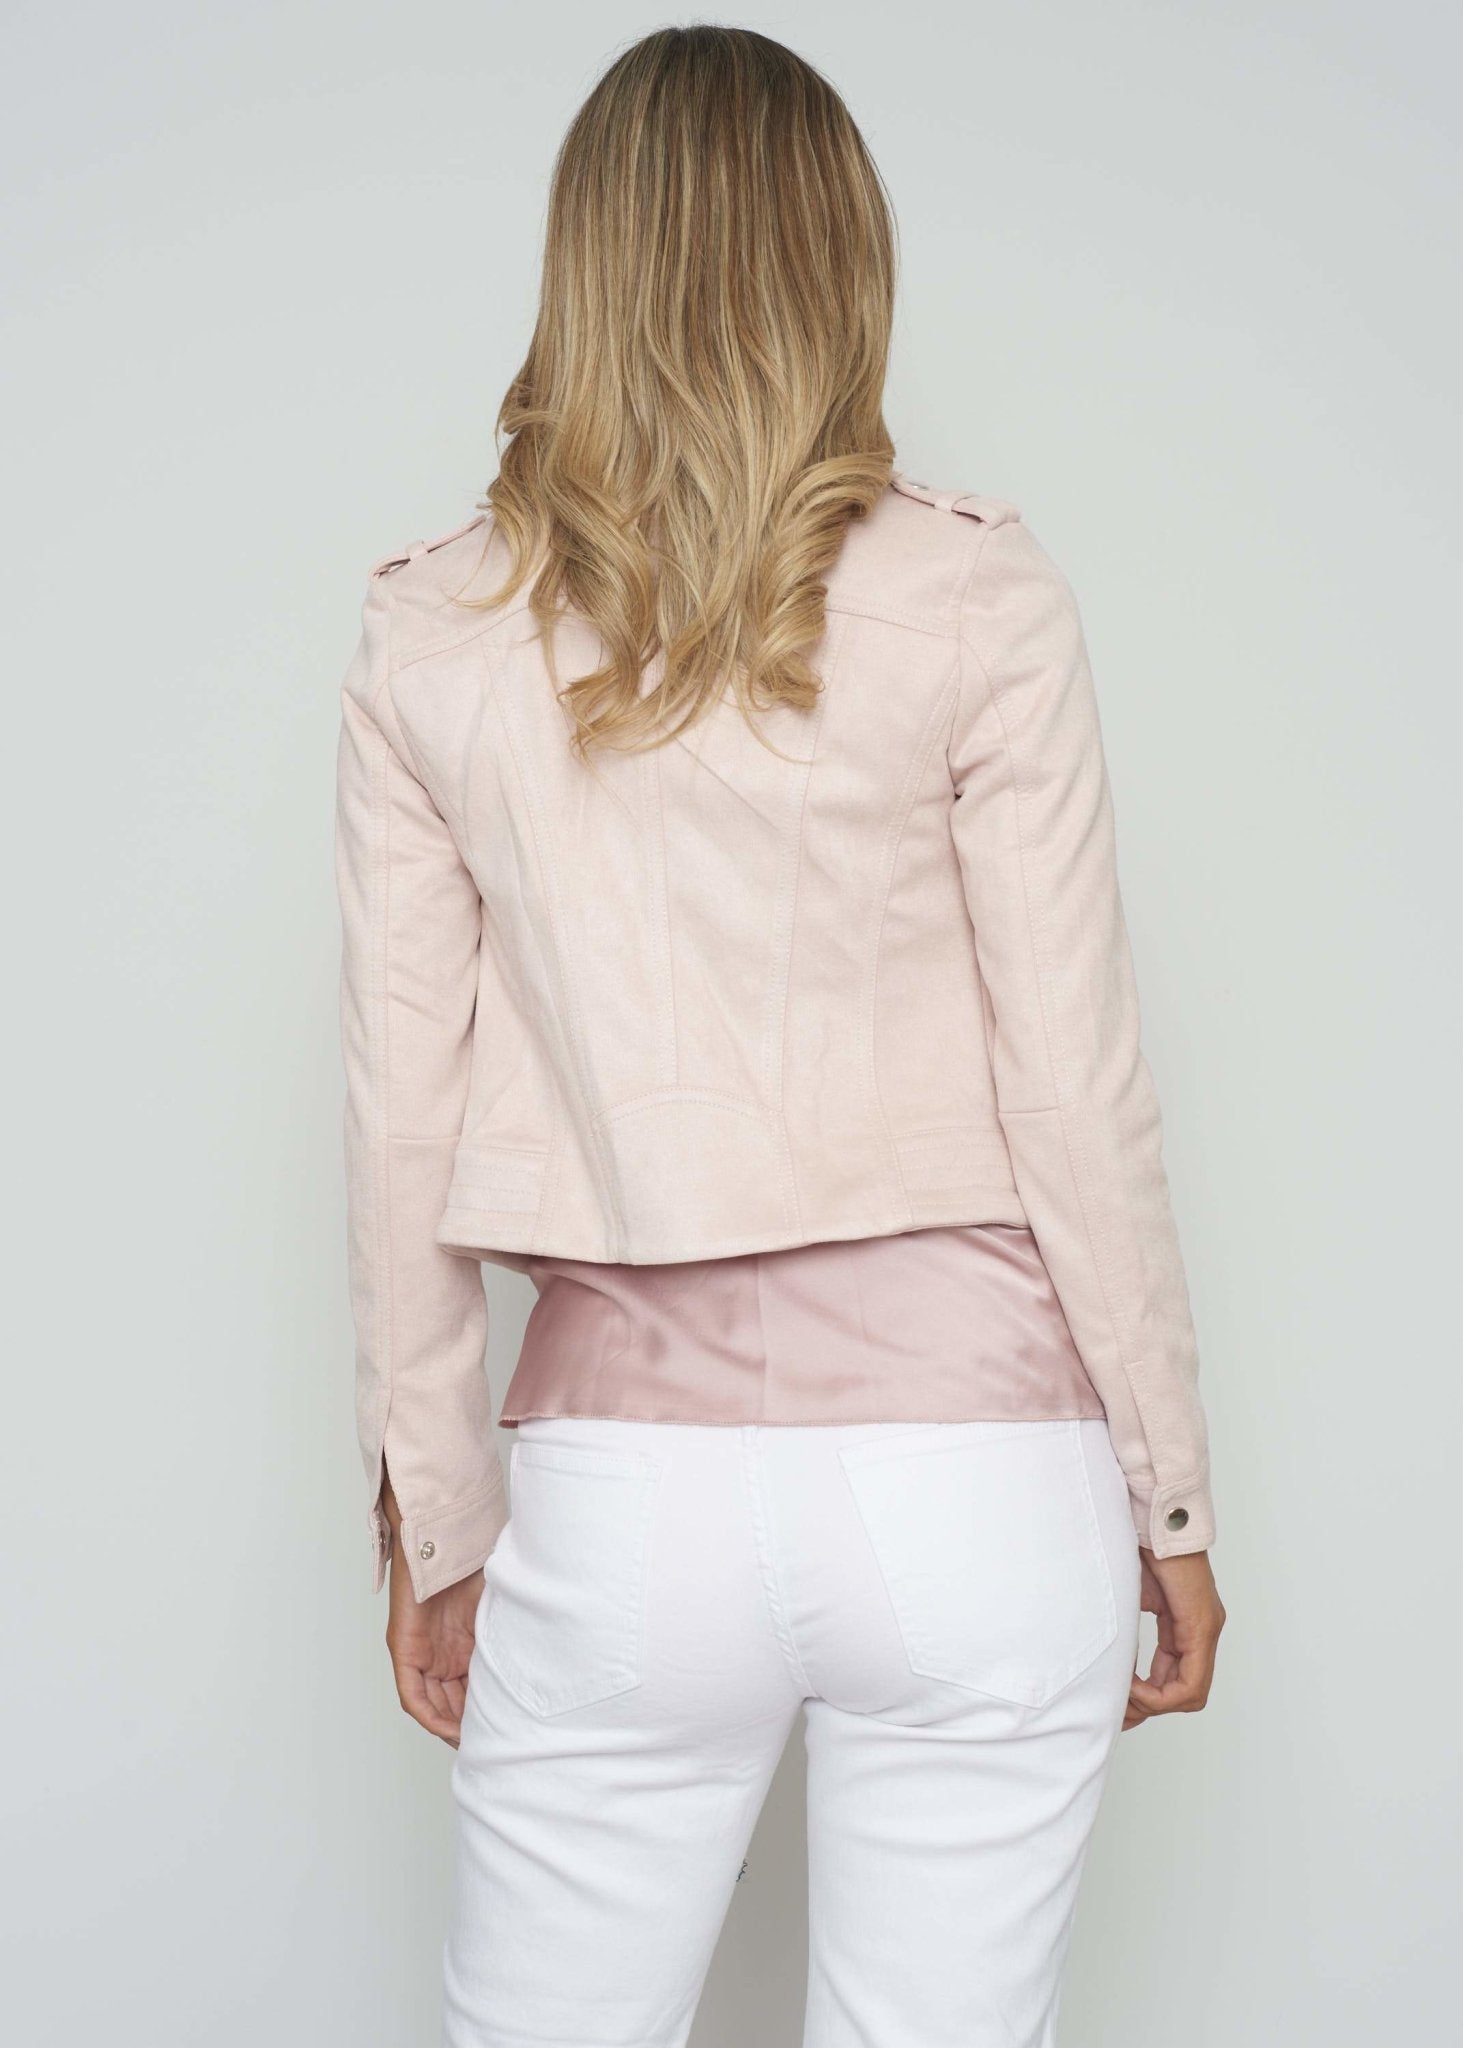 Samantha Faux Suede Jacket In Pink - The Walk in Wardrobe